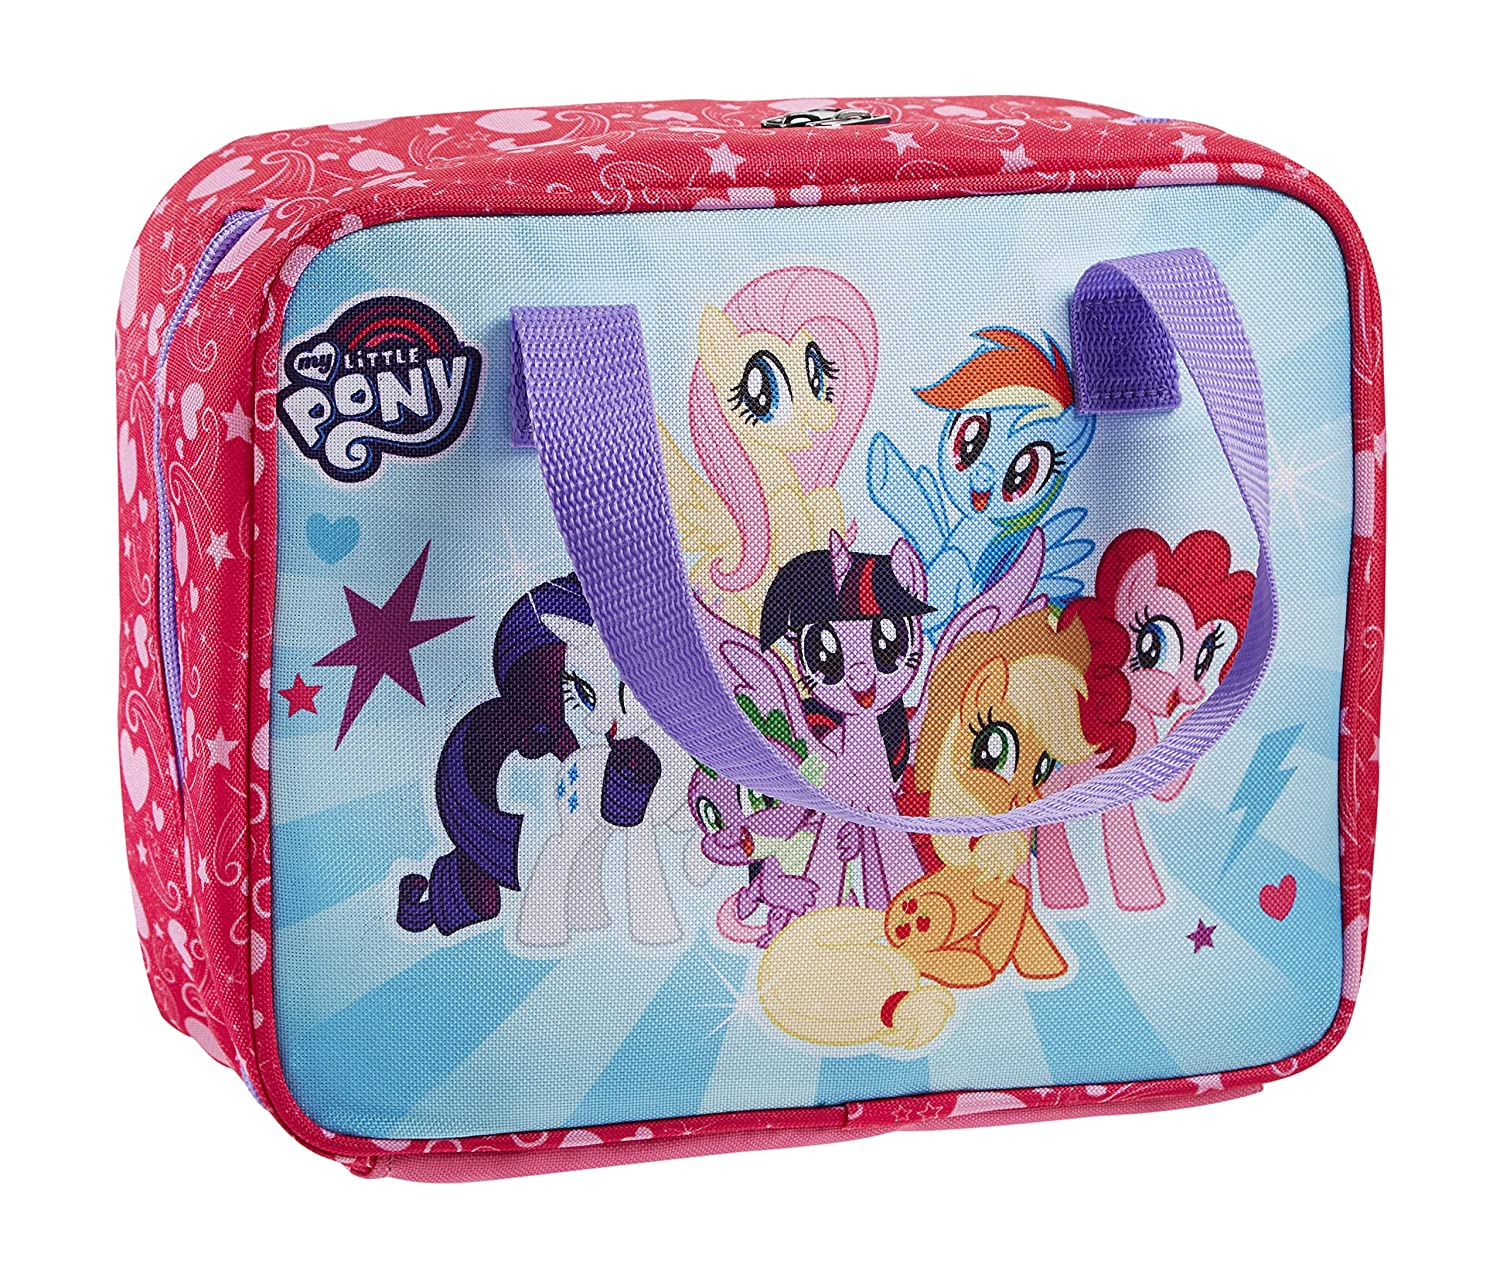 Fit & Fresh My Little Pony Insulated Lunch Bag with Glitter Ice Pack and Full Zip Closure, Fluttershy, Applejack, Pinkie Pie, Rarity, Twilight Sparkle, Rainbow Dash